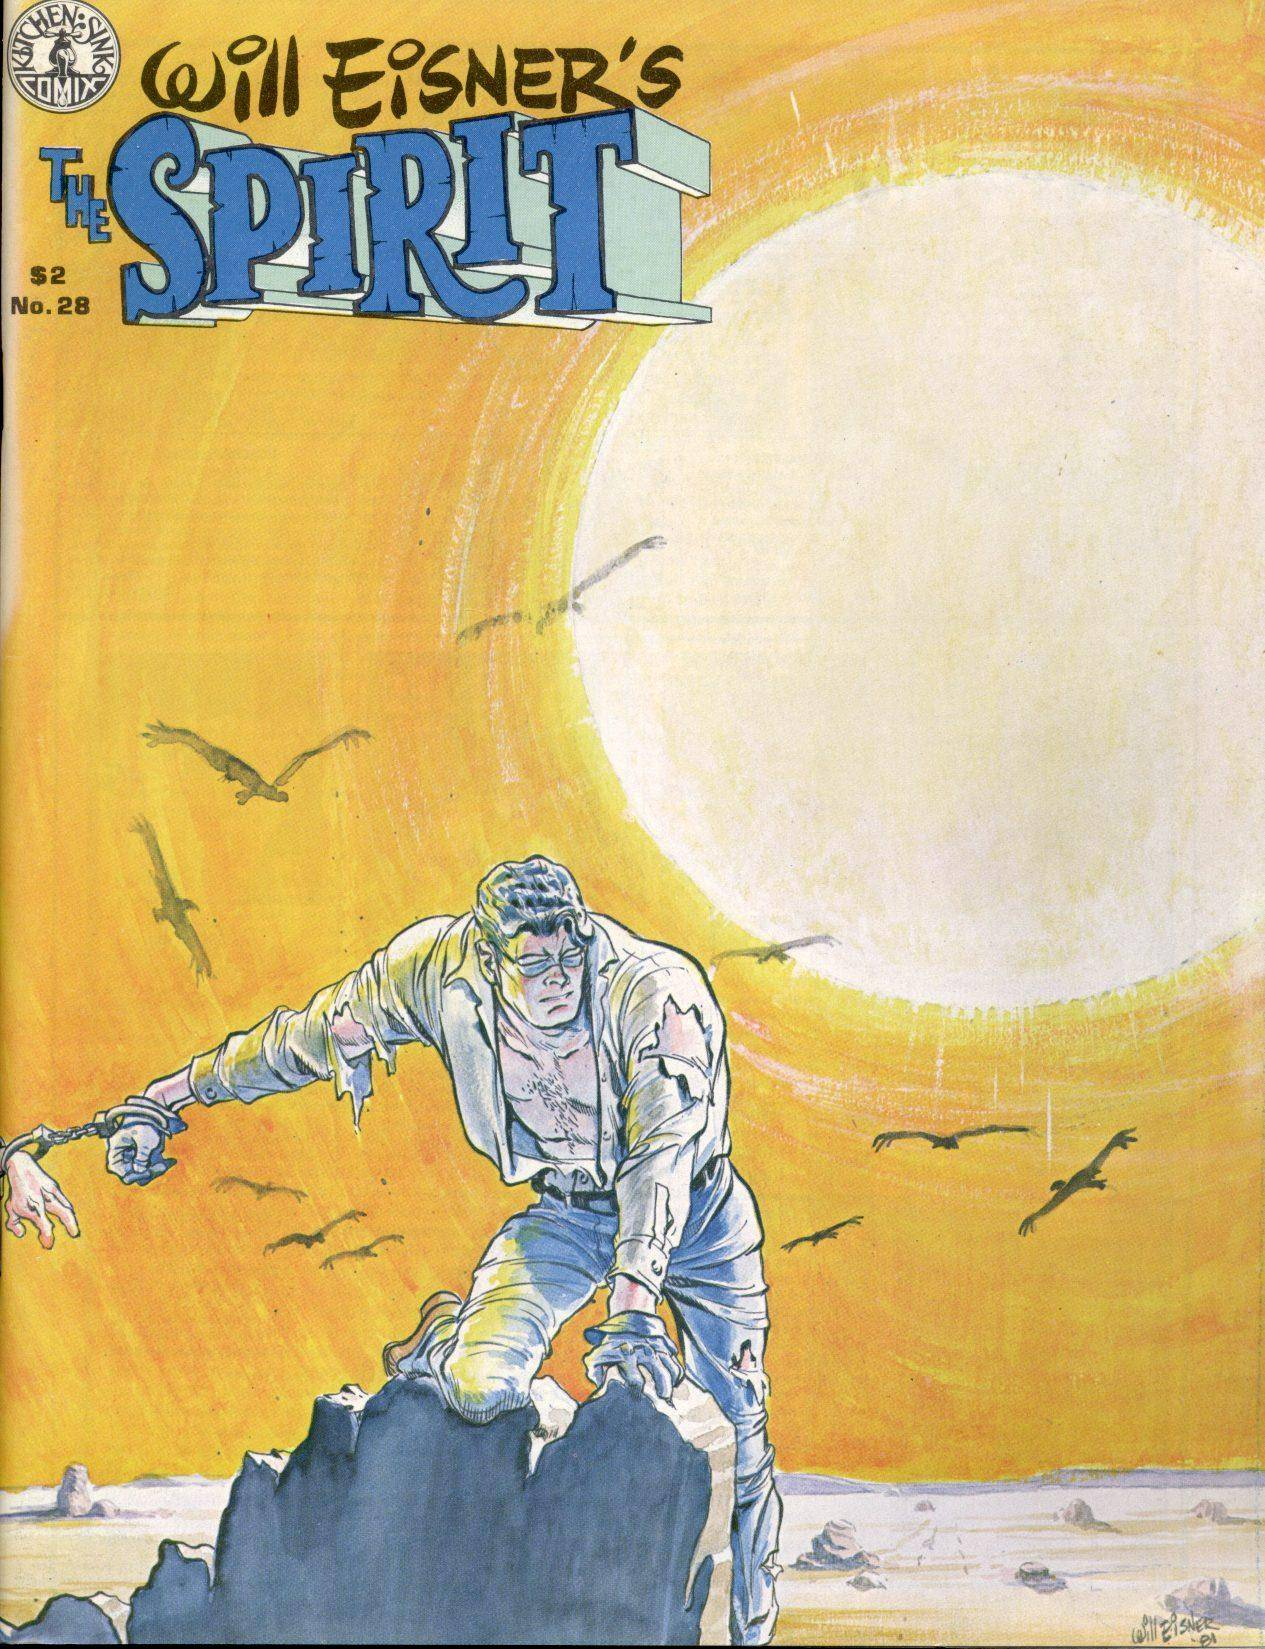 The Spirit 06-The Spirit Kitchen Sink Press1977-1998 [14 of 111] The Spirit Magazine v2 028 1981 Kitchen Sink DuckyWucky cbr